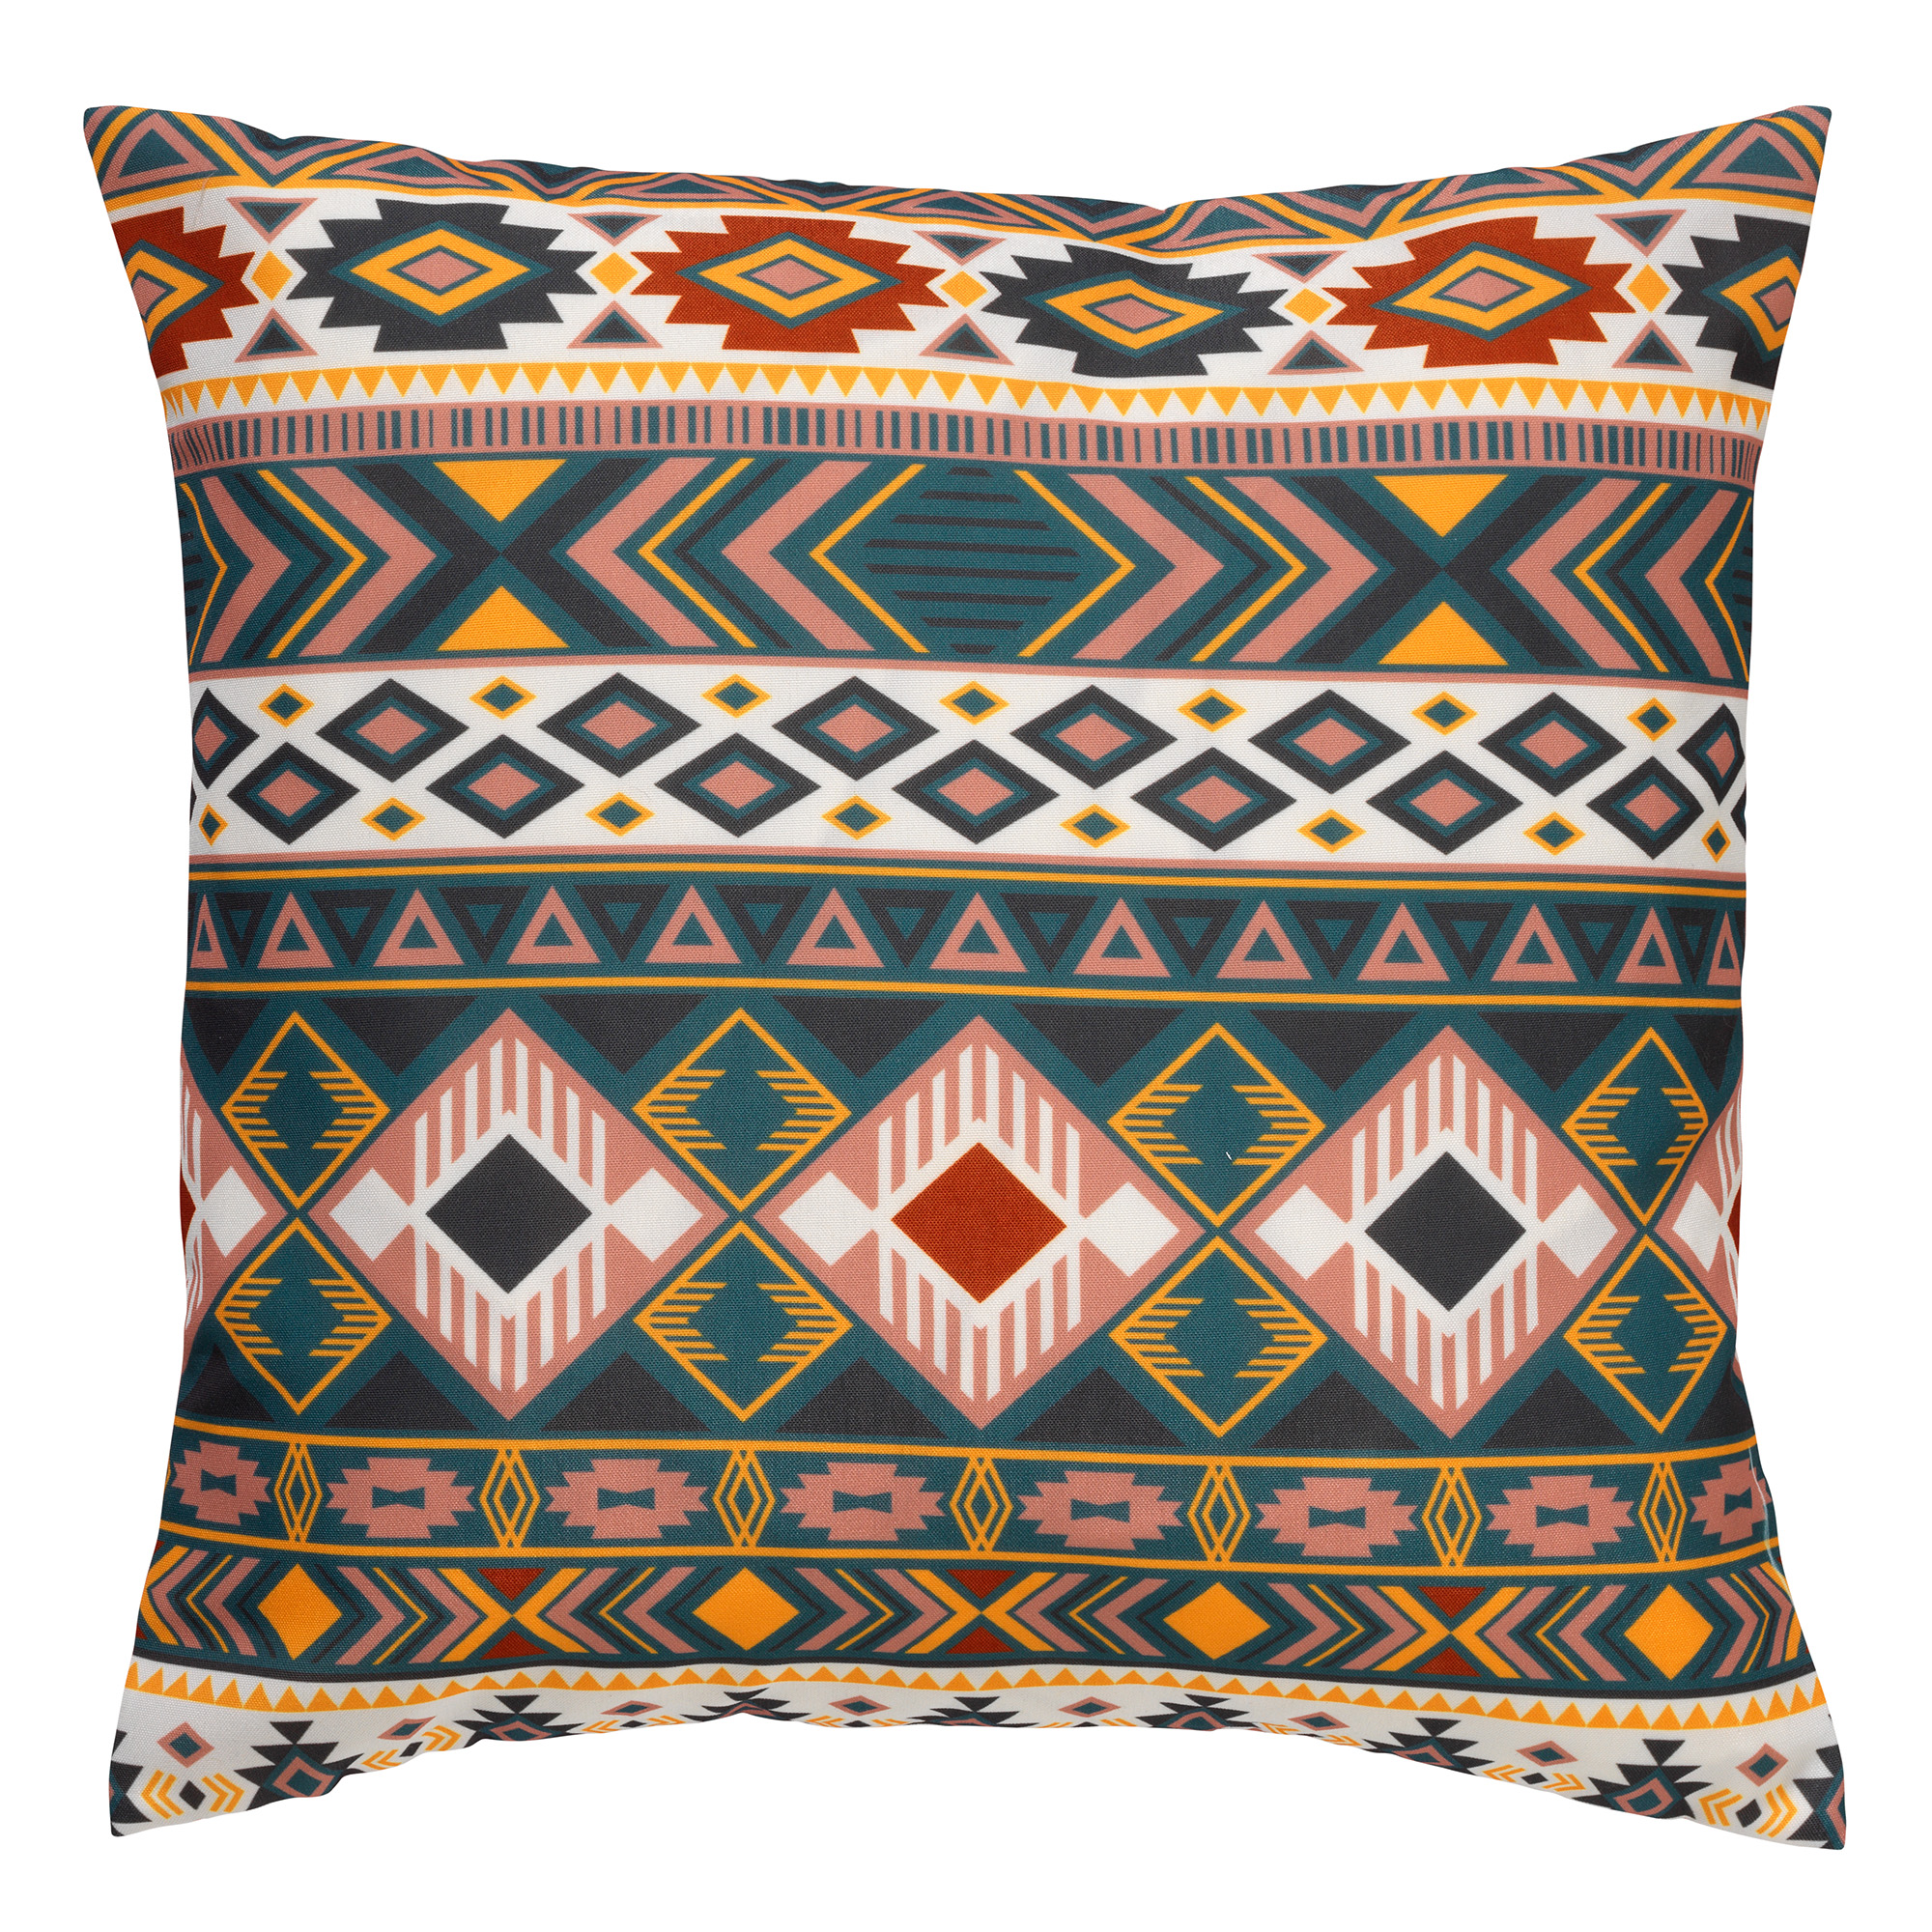 SANSSARI - Kussenhoes outdoor Sagebrush Green 45x45 cm